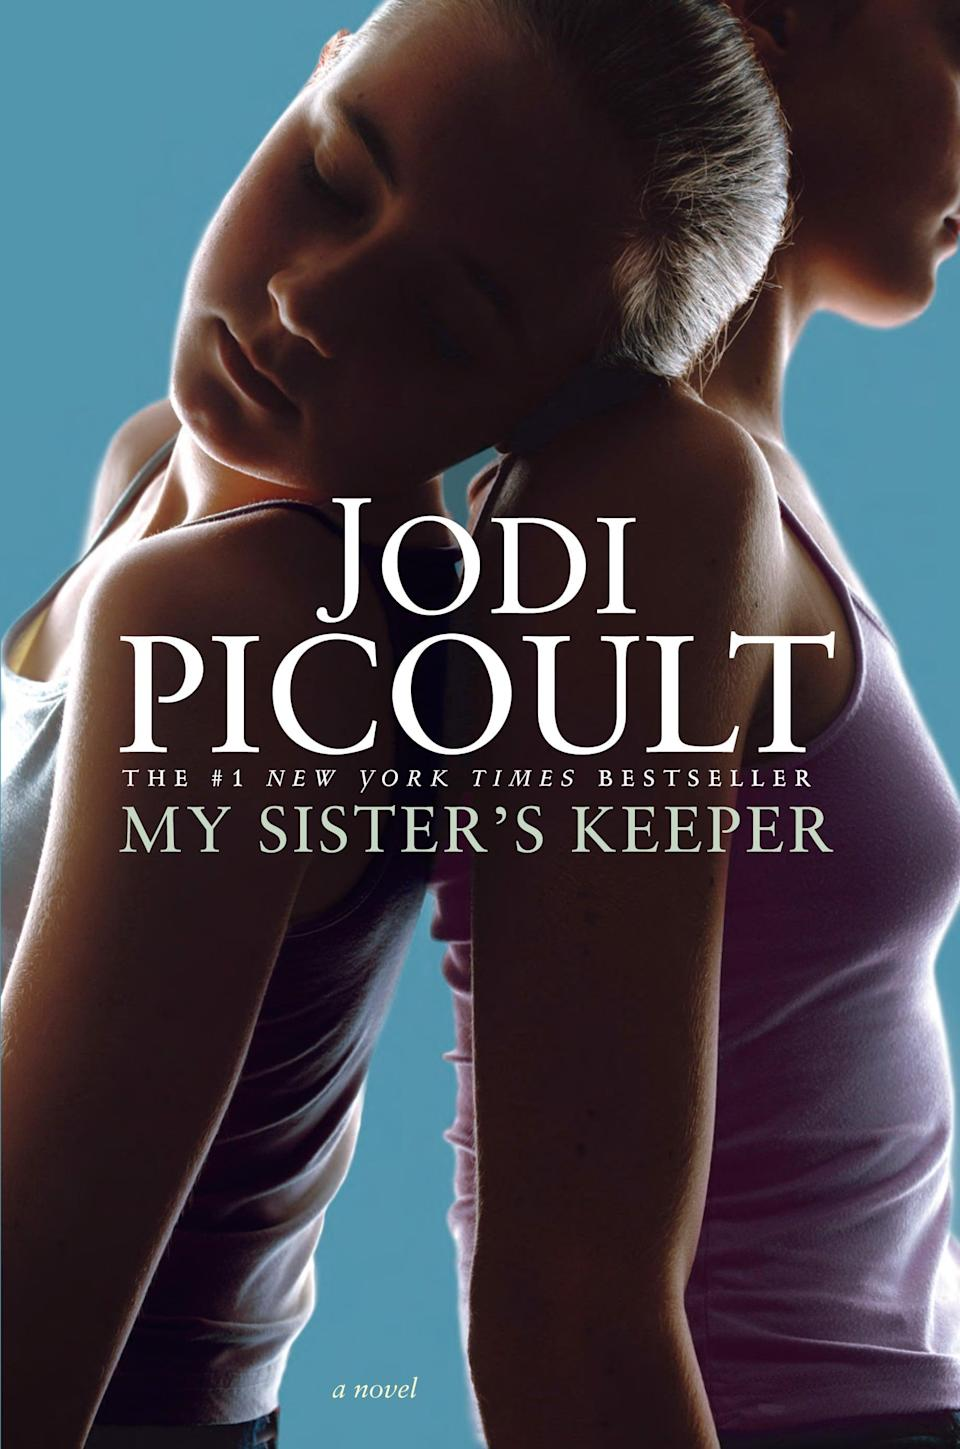 "<p><a href=""https://www.popsugar.com/buy?url=https%3A%2F%2Fwww.amazon.com%2FMy-Sisters-Keeper-Jodi-Picoult%2Fdp%2FB007CRTNWK%2Fref%3Dsr_1_3%3Fs%3Dbooks%26ie%3DUTF8%26qid%3D1488930274%26sr%3D1-3%26keywords%3Dmy%2Bsisters%2Bkeeper&p_name=%3Cb%3EMy%20Sister%27s%20Keeper%3C%2Fb%3E%20by%20Jodi%20Picoult&retailer=amazon.com&evar1=tres%3Auk&evar9=43250262&evar98=https%3A%2F%2Fwww.popsugar.com%2Flove%2Fphoto-gallery%2F43250262%2Fimage%2F43252244%2FMy-Sister-Keeper-Jodi-Picoult&list1=books%2Cwomen%2Creading%2Cinternational%20womens%20day%2Cwomens%20history%20month&prop13=api&pdata=1"" class=""link rapid-noclick-resp"" rel=""nofollow noopener"" target=""_blank"" data-ylk=""slk:My Sister's Keeper by Jodi Picoult""><b>My Sister's Keeper</b> by Jodi Picoult</a></p>"